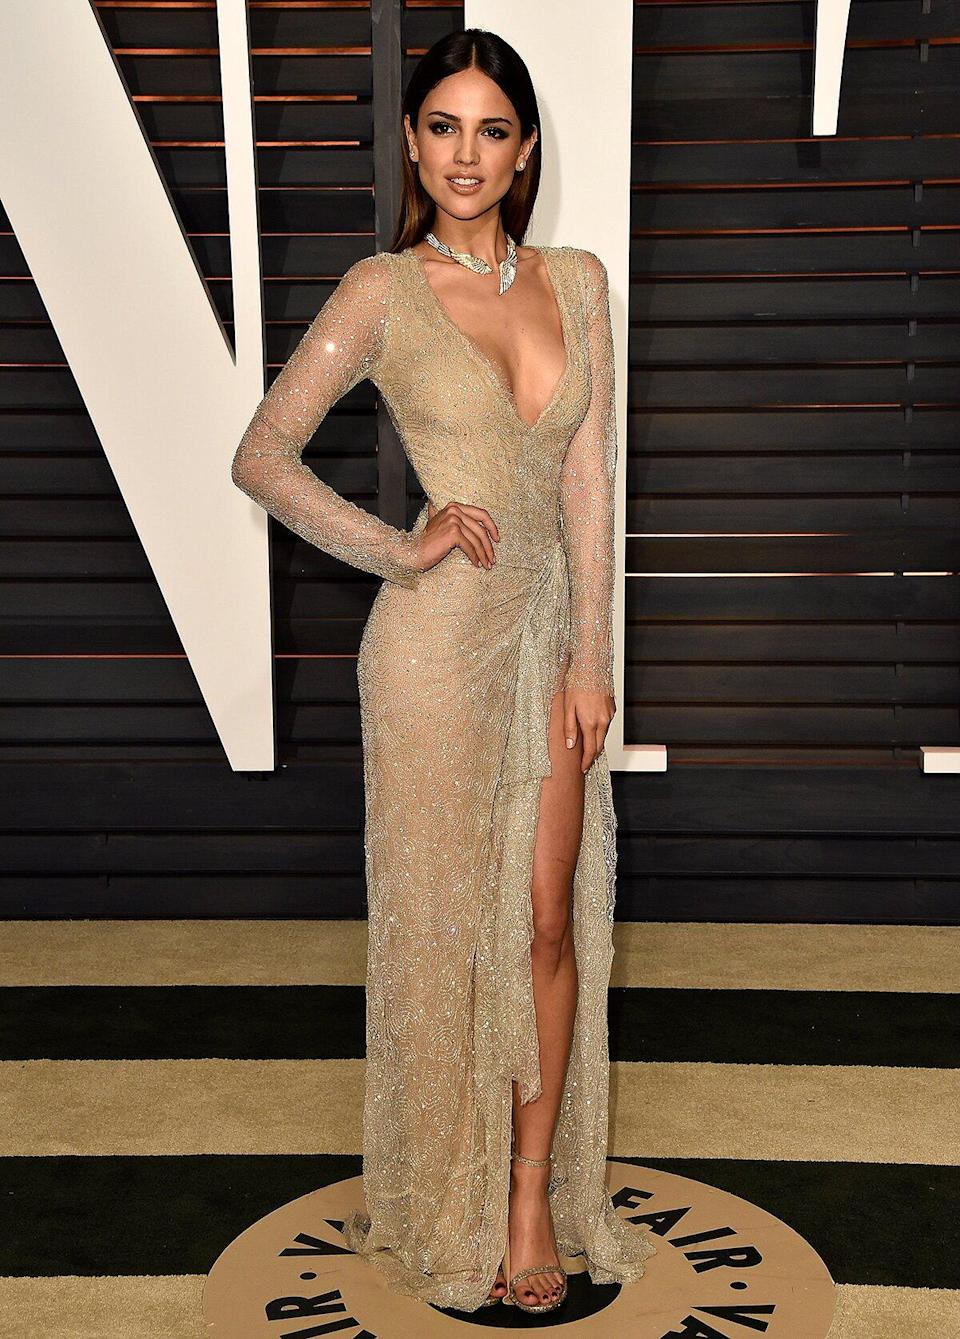 Actress Eiza Gonzalez attends the 2015 Vanity Fair Oscar Party hosted by Graydon Carter at Wallis Annenberg Center for the Performing Arts on February 22, 2015